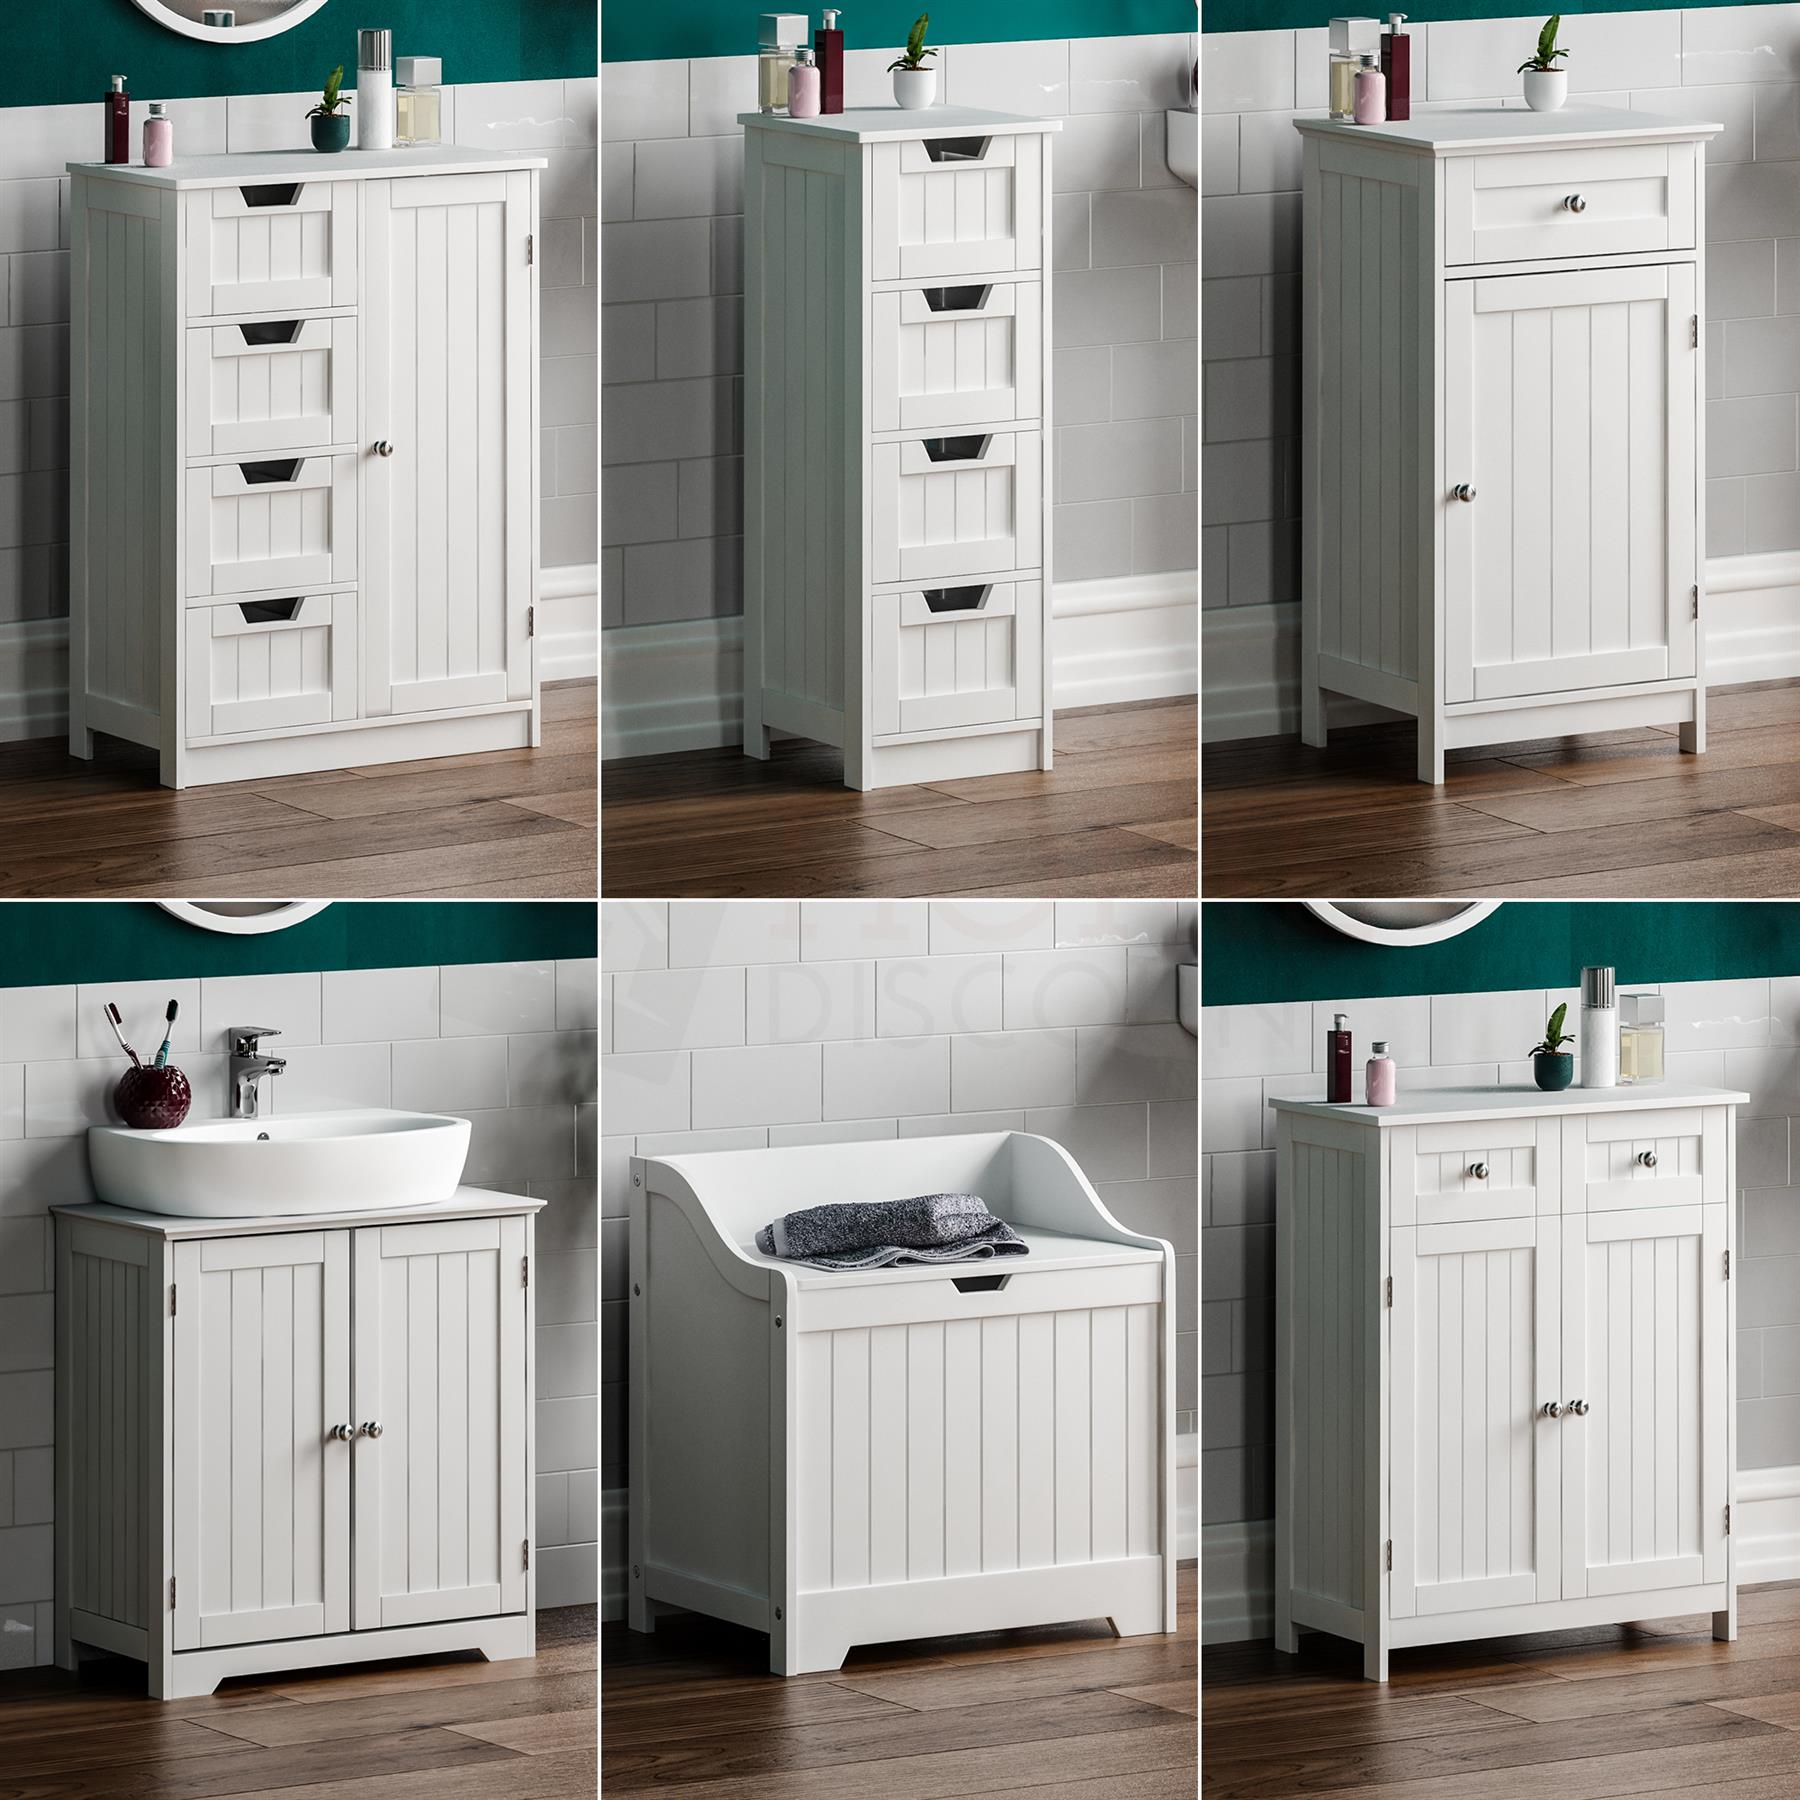 Details About Bathroom Cabinet Freestanding Cupboard Drawer Storage White Furniture Mdf Unit for dimensions 1800 X 1800